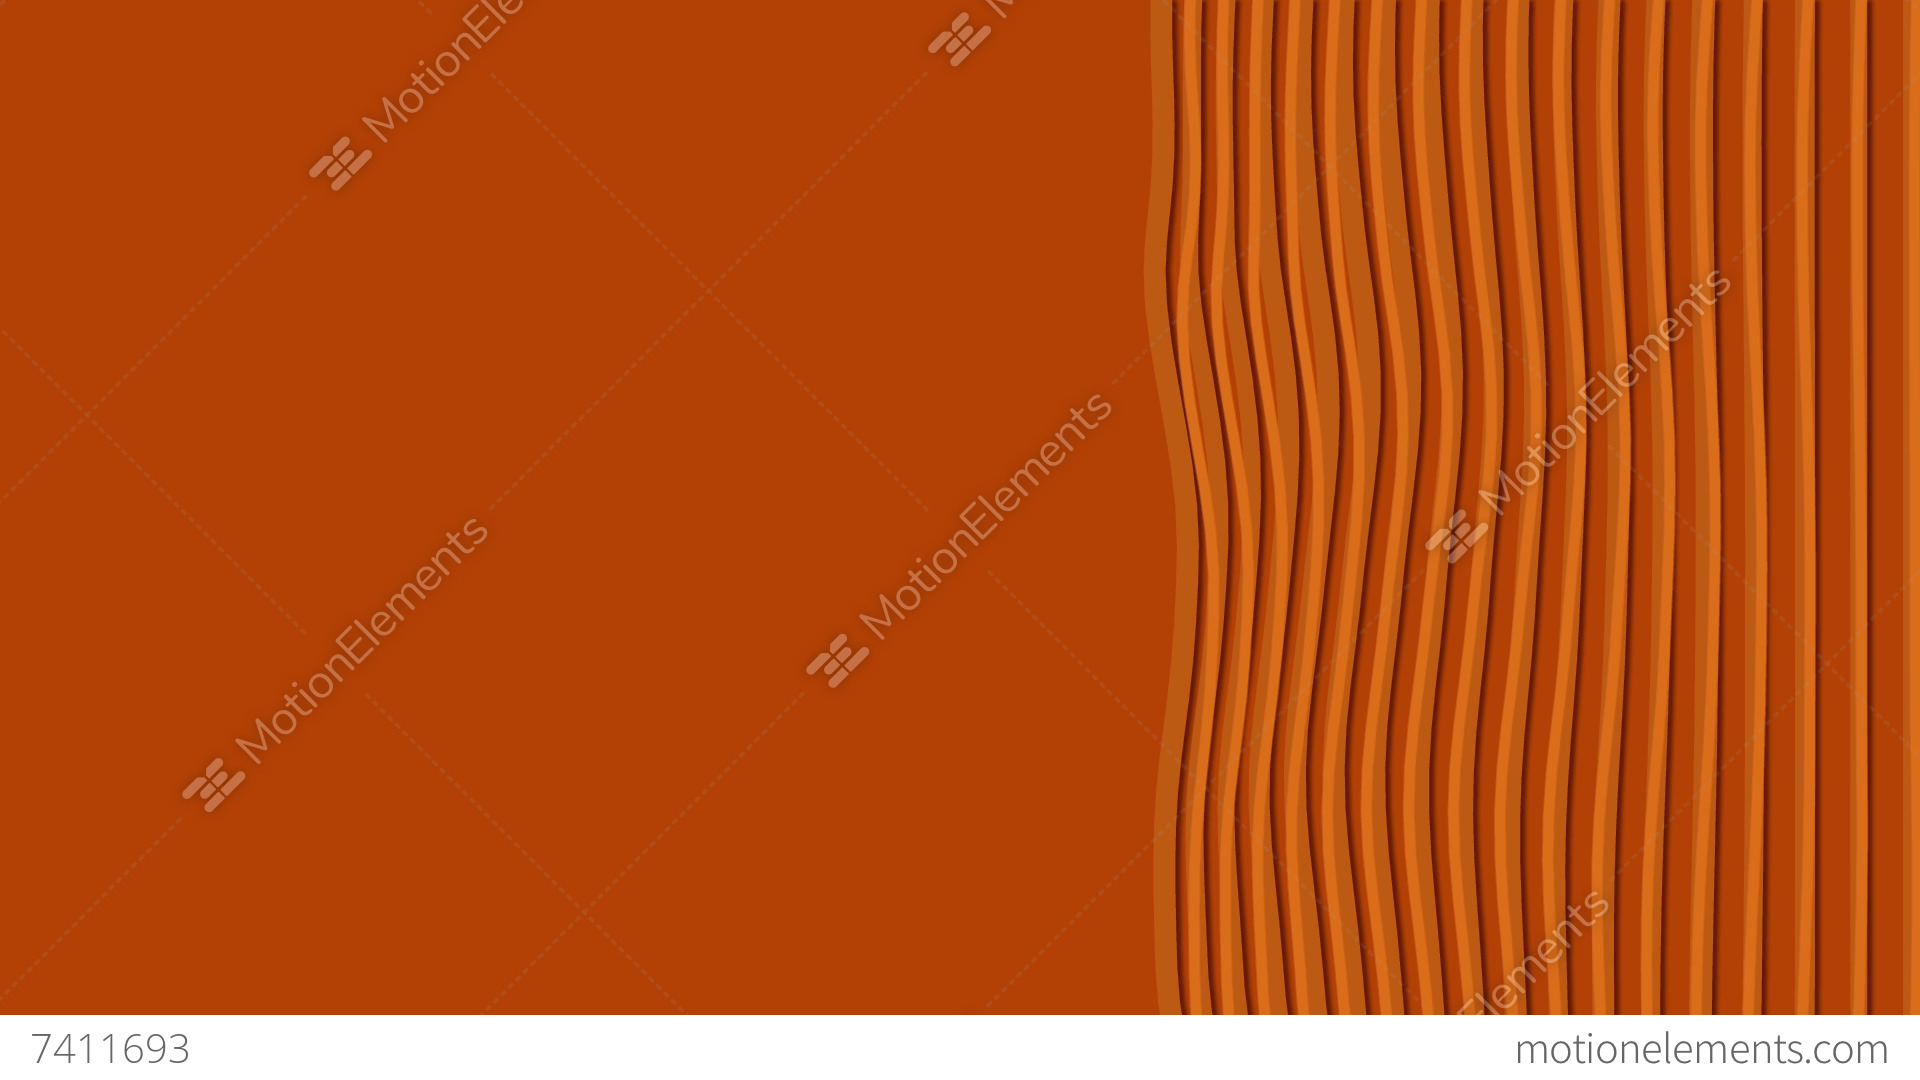 Abstract background hd 1080 1920 x 1080 cg 7411693 abstract background hd 1080 1920 x 1080 voltagebd Images